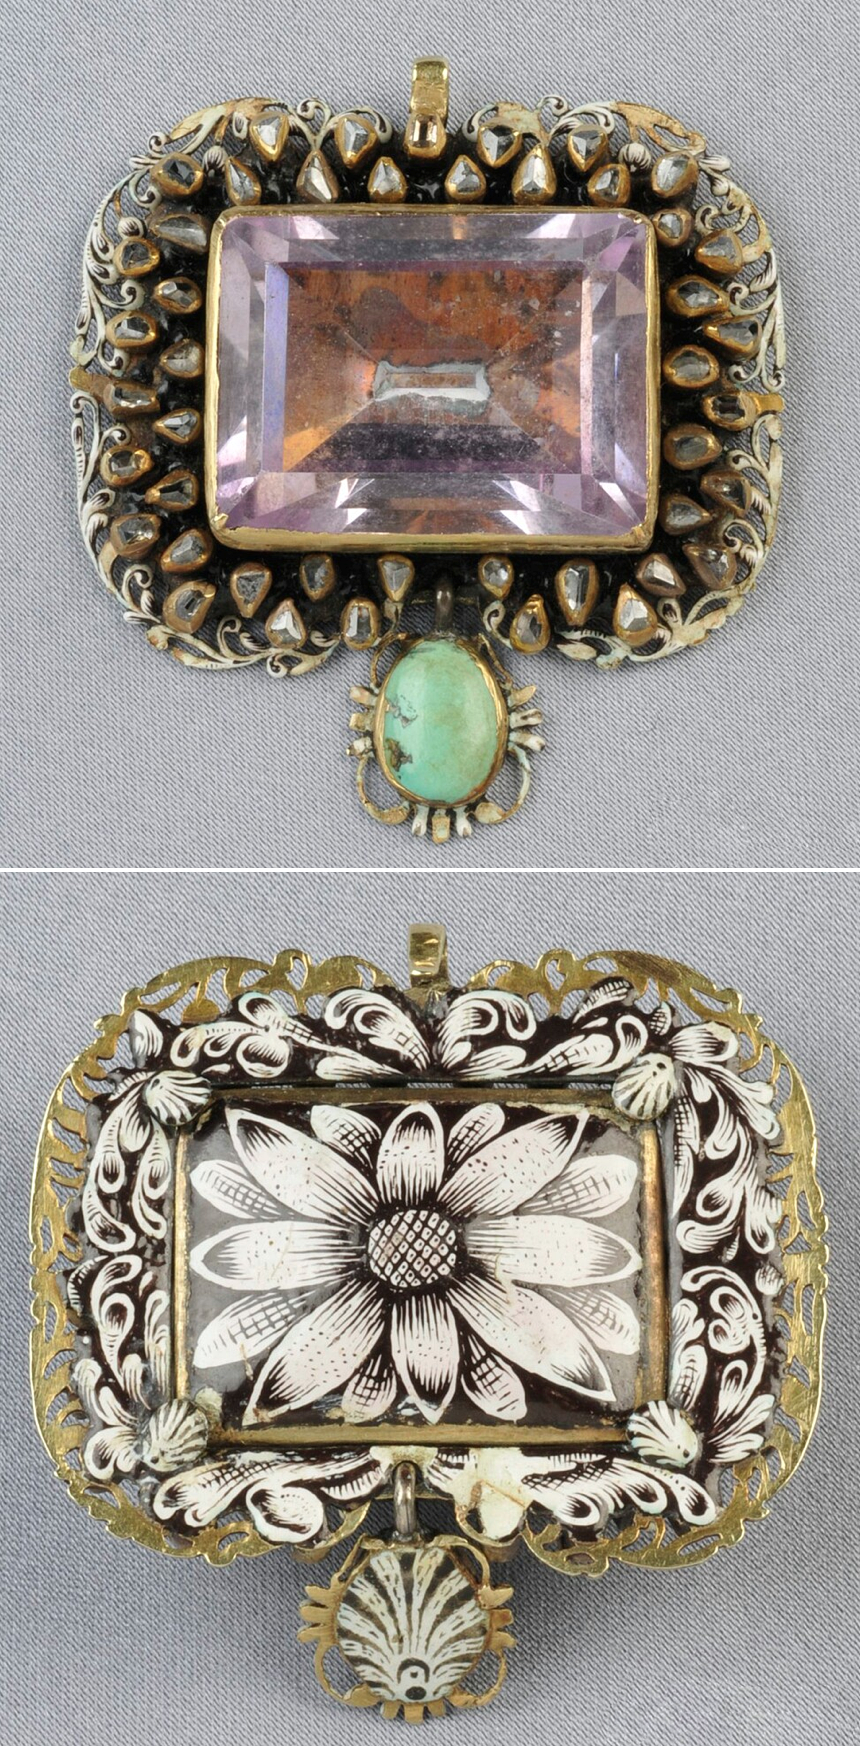 Antique Gold Gem-set Pendant, probably Portugal, set with a large purple foil-back faceted rock crystal framed by diamonds and suspending a turquoise drop, the reverse with fine en grisaille counter-enamel, lg. 1 3/4 in. Renaissance or Renaissance style.